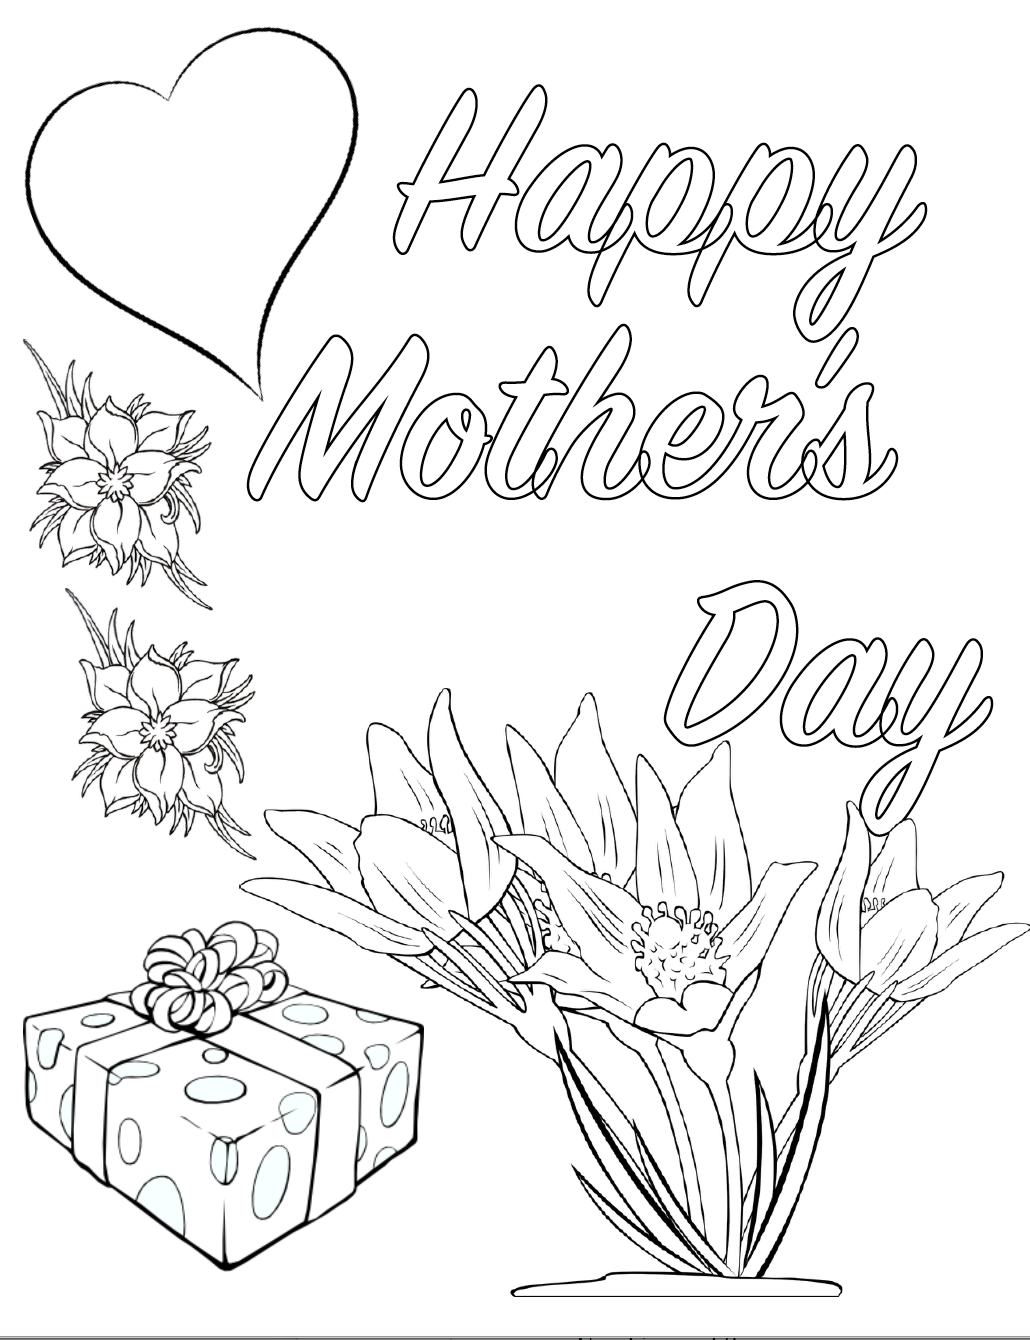 Free Printable Mother's Day Coloring Pages: 4 Designs. The kids will love these cute coloring sheets that they can give Mom for Mother's Day. Just print and color!